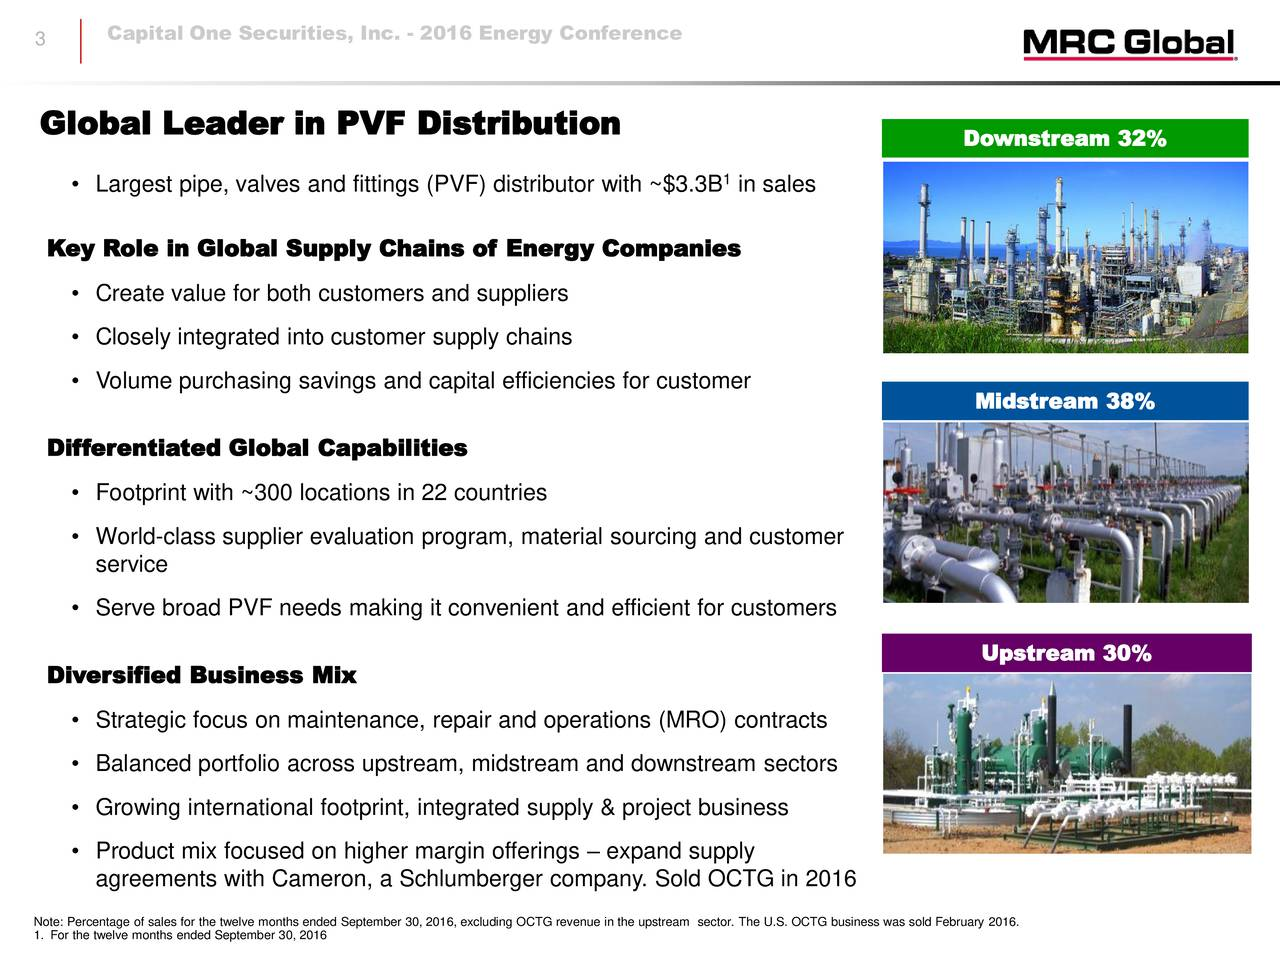 Global Leader in PVF Distribution Downstream 32% 1 Largest pipe, valves and fittings (PVF) distributor with ~$3.3B in sales Key Role in Global Supply Chains of Energy Companies Create value for both customers and suppliers Closely integrated into customer supply chains Projects 28% Volume purchasing savings and capital efficiencies for customer Midstream 38% Differentiated Global Capabilities Footprint with ~300 locations in 22 countries World-class supplier evaluation program, material sourcing and customer service Serve broad PVF needs making it convenient and efficient for customers Upstream 30% Diversified Business Mix Strategic focus on maintenance, repair and operations (MRO) contracts U.S. 75% Balanced portfolio across upstream, midstream and downstream sectors Growing international footprint, integrated supply & project business Product mix focused on higher margin offerings  expand supply agreements with Cameron, a Schlumberger company. Sold OCTG in 2016 Note: Percentage of sales for the twelve months ended September 30, 2016, excluding OCTG revenue in the upstream sector. The U.S. OCTG business was sold February 2016. 1. For the twelve months ended September 30, 2016